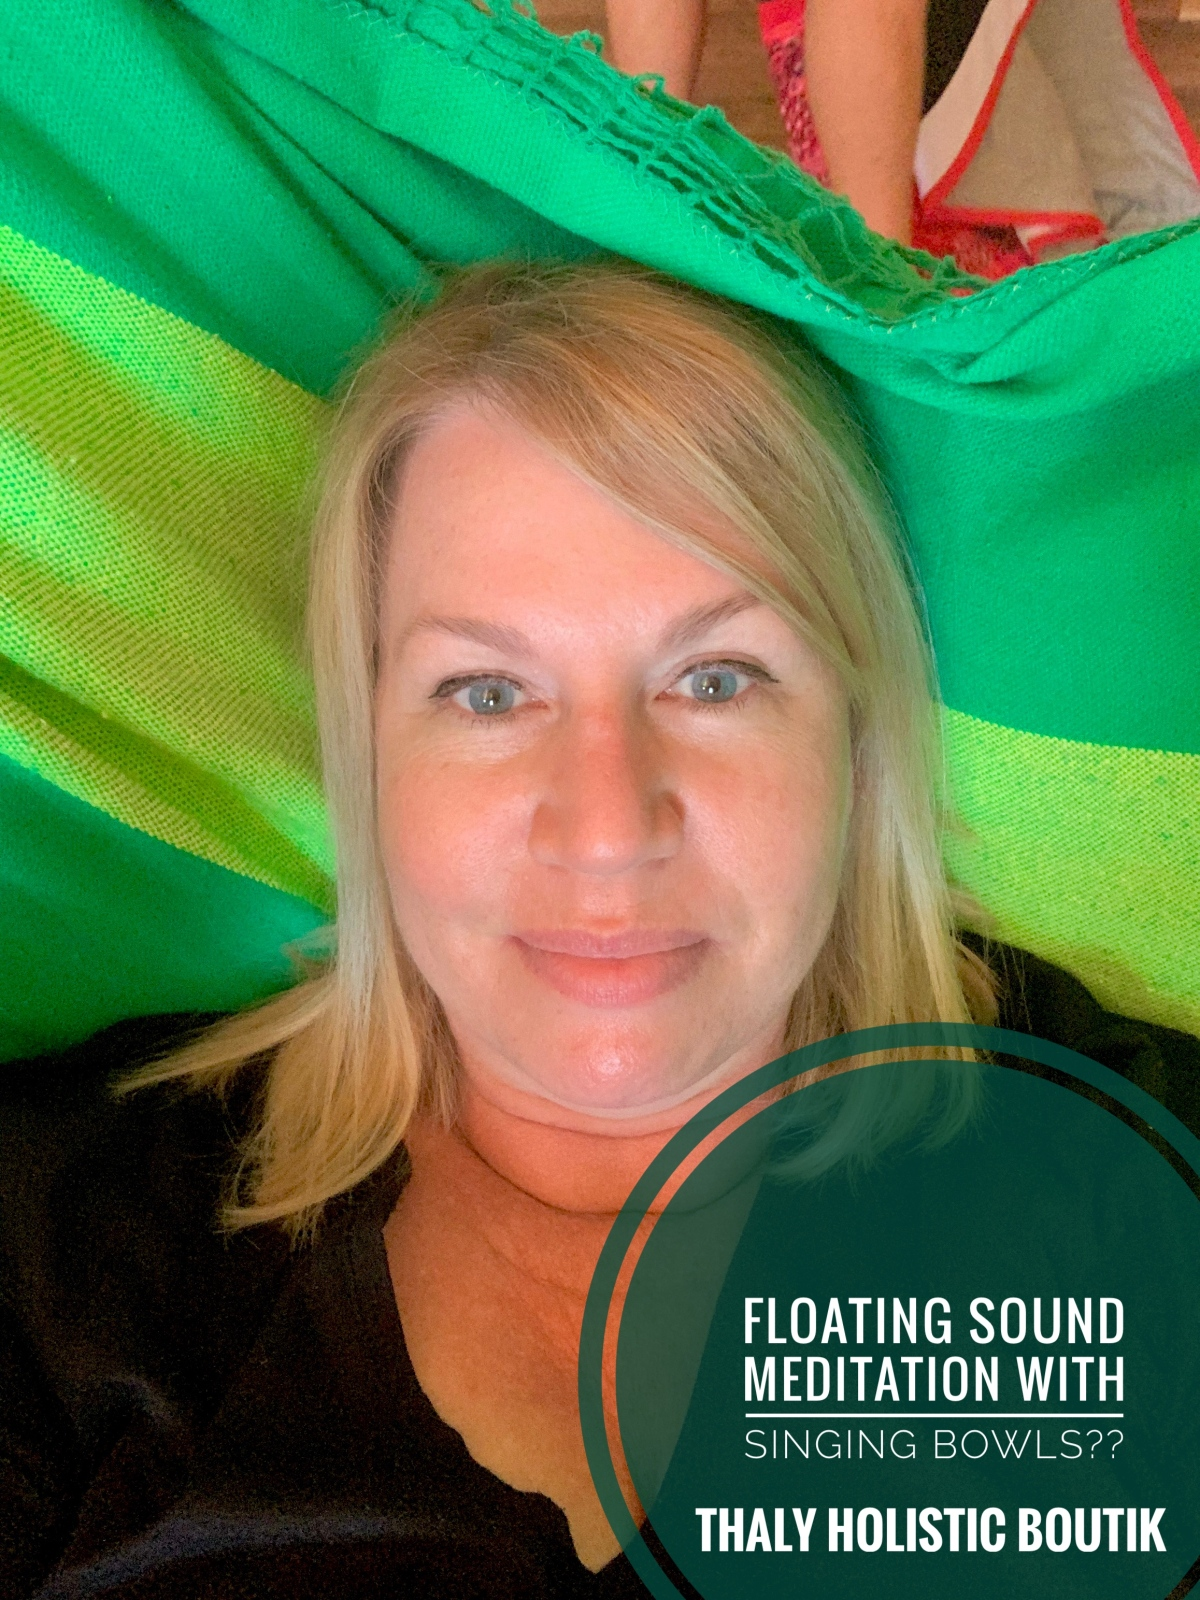 Floating Sound Meditation with Singing Bowls…say what??